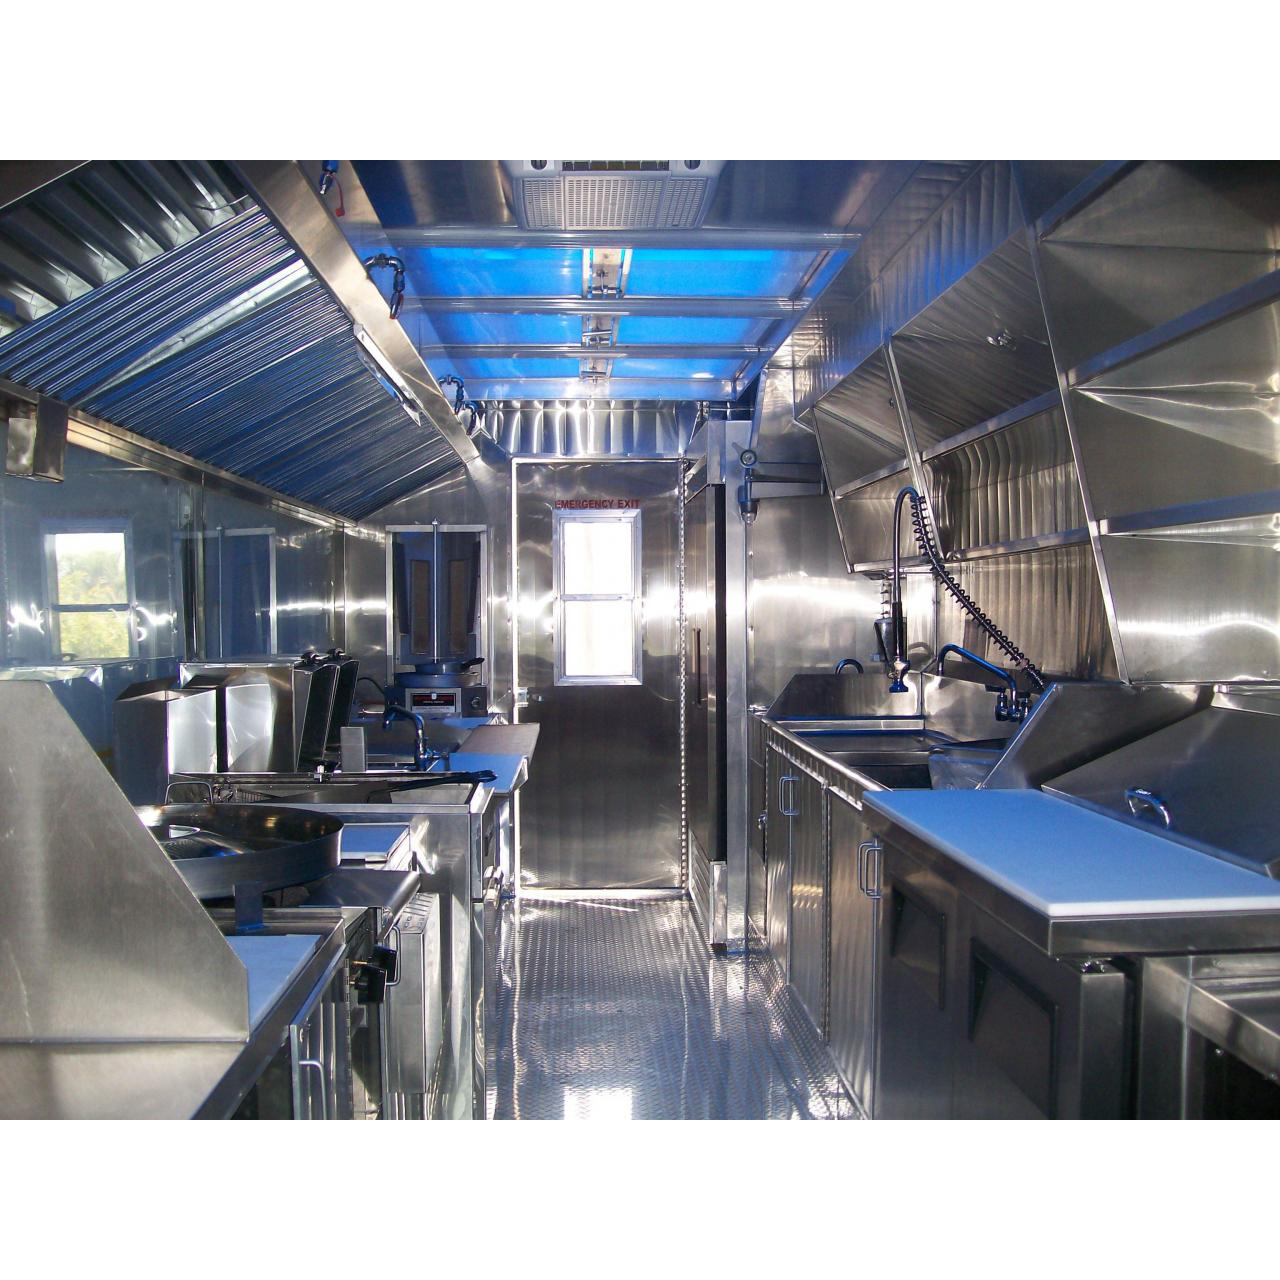 Cheap Kitchen and Trailer in One for sale